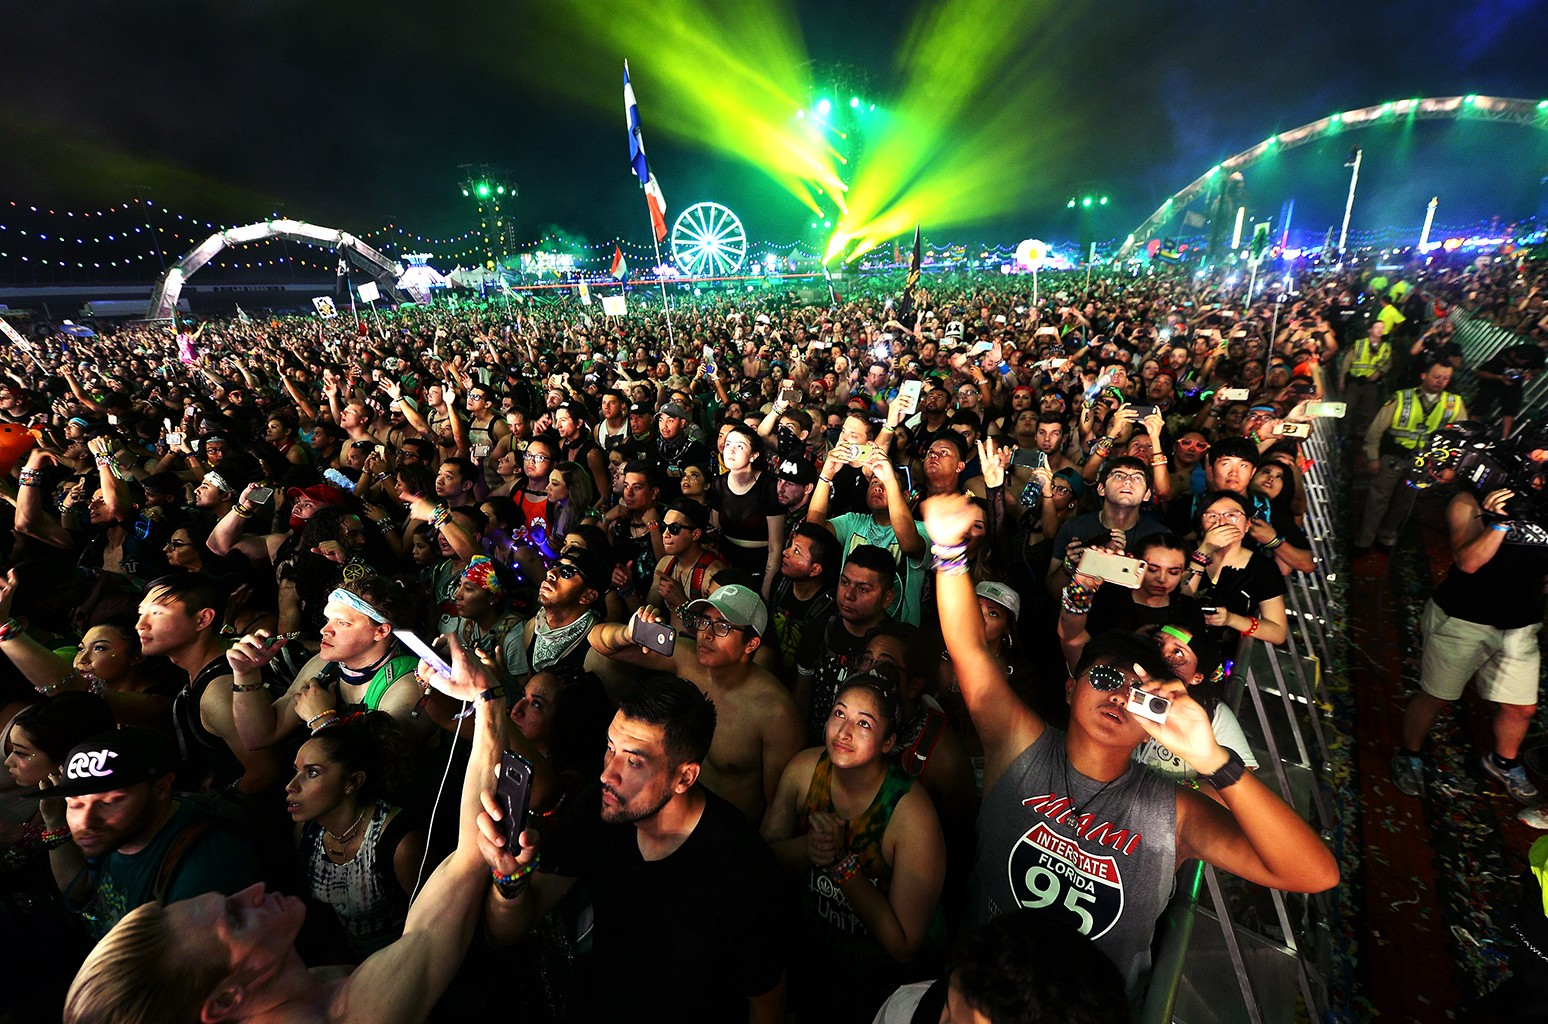 electric daisy carnival finally scheduled for may 2021, date and all detailed information !